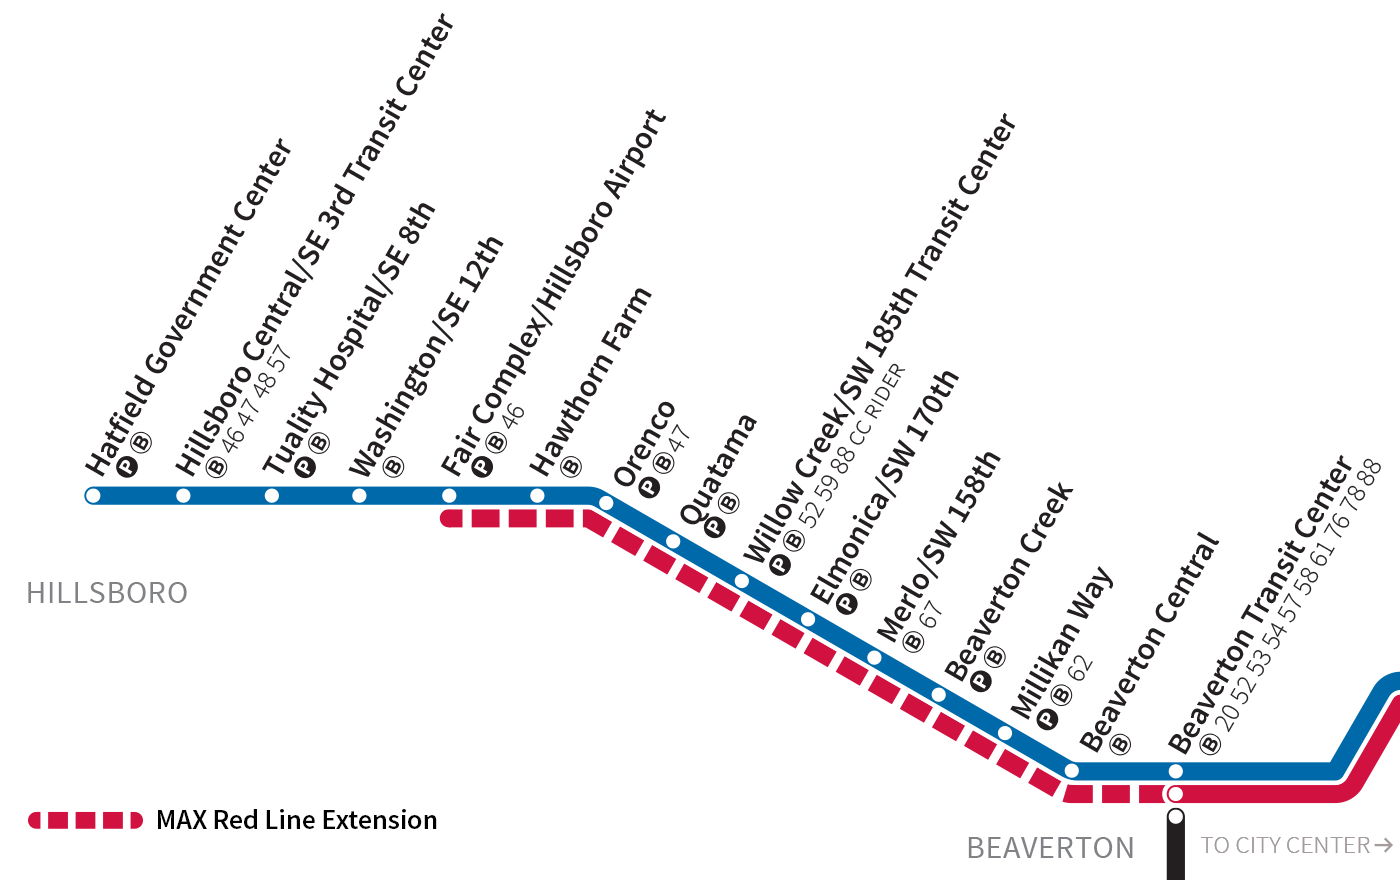 New Red Line stations